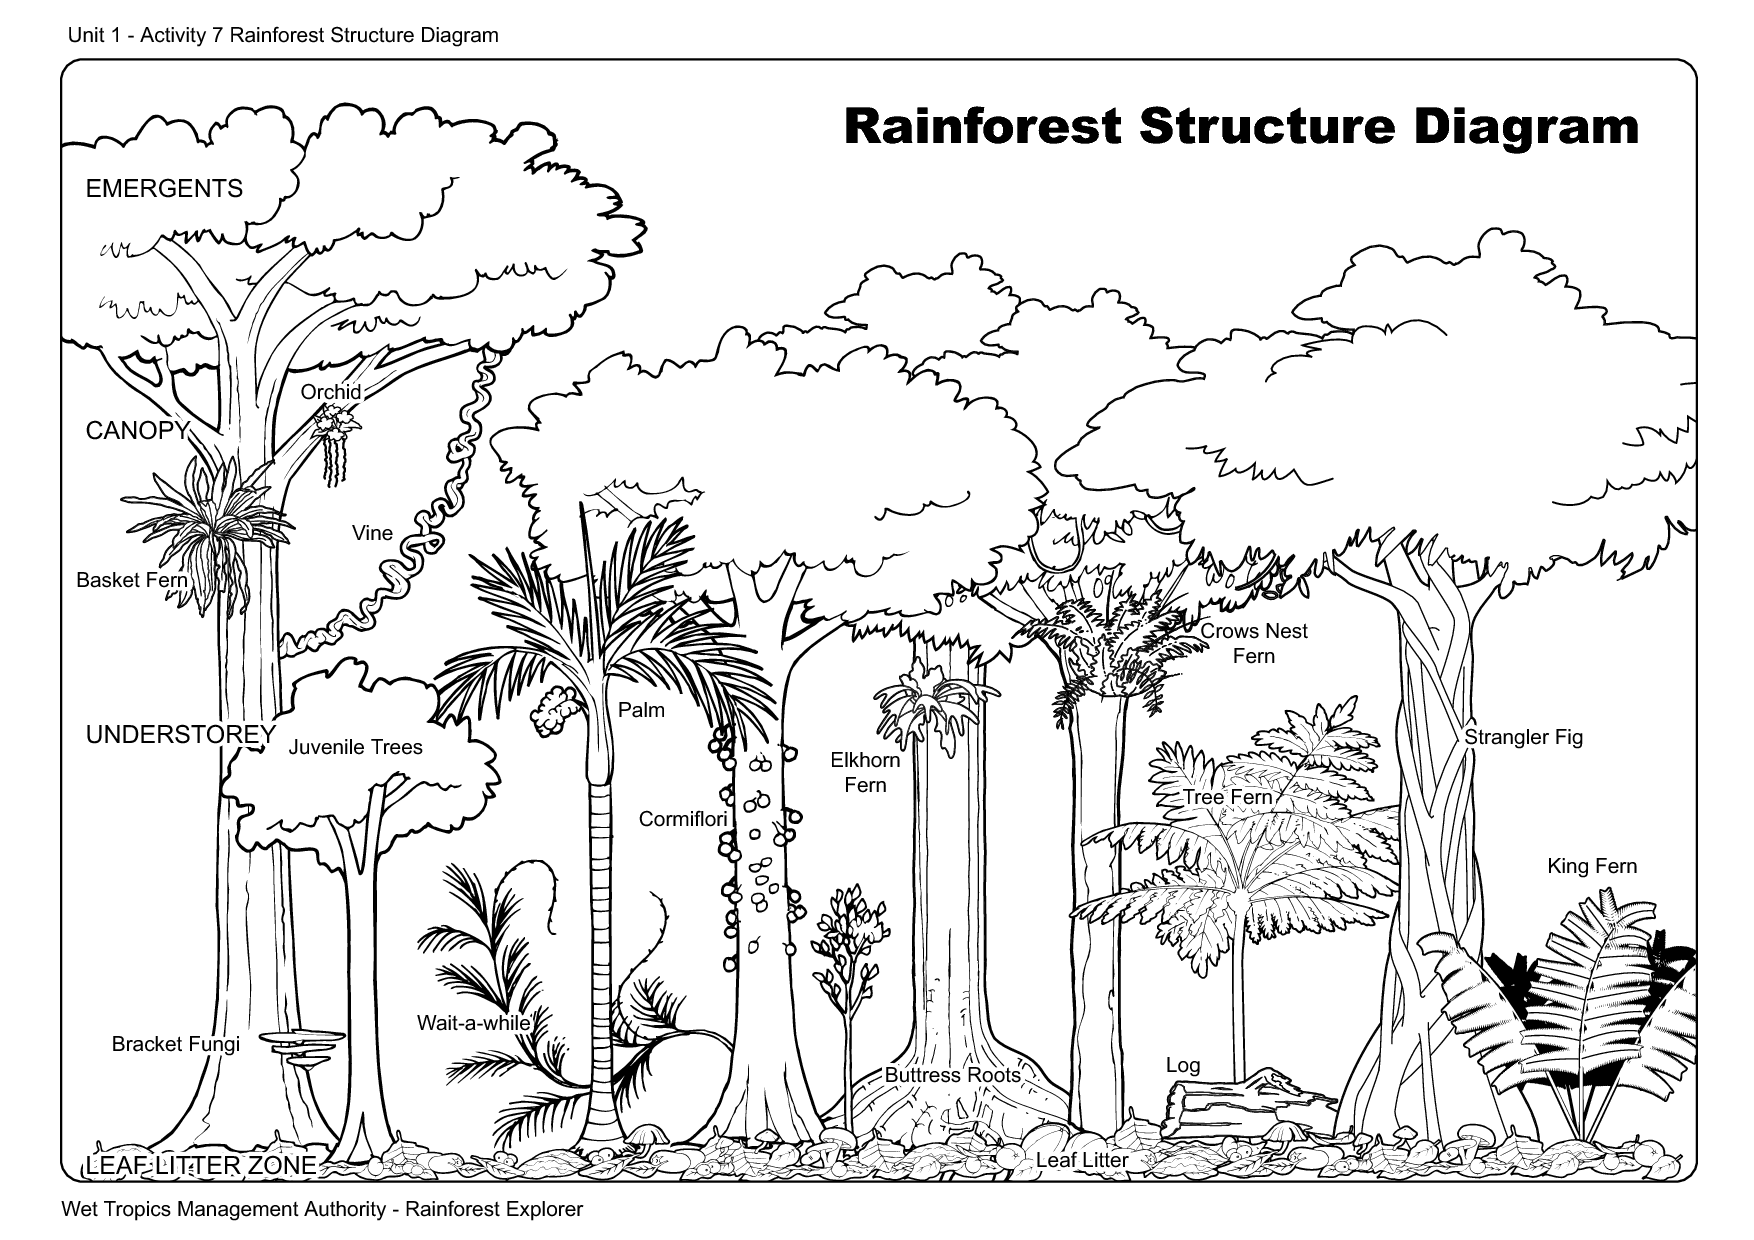 medium resolution of rainforest layer diagram rainforest ecosystem rainforest habitat rainforest project daintree rainforest rainforest